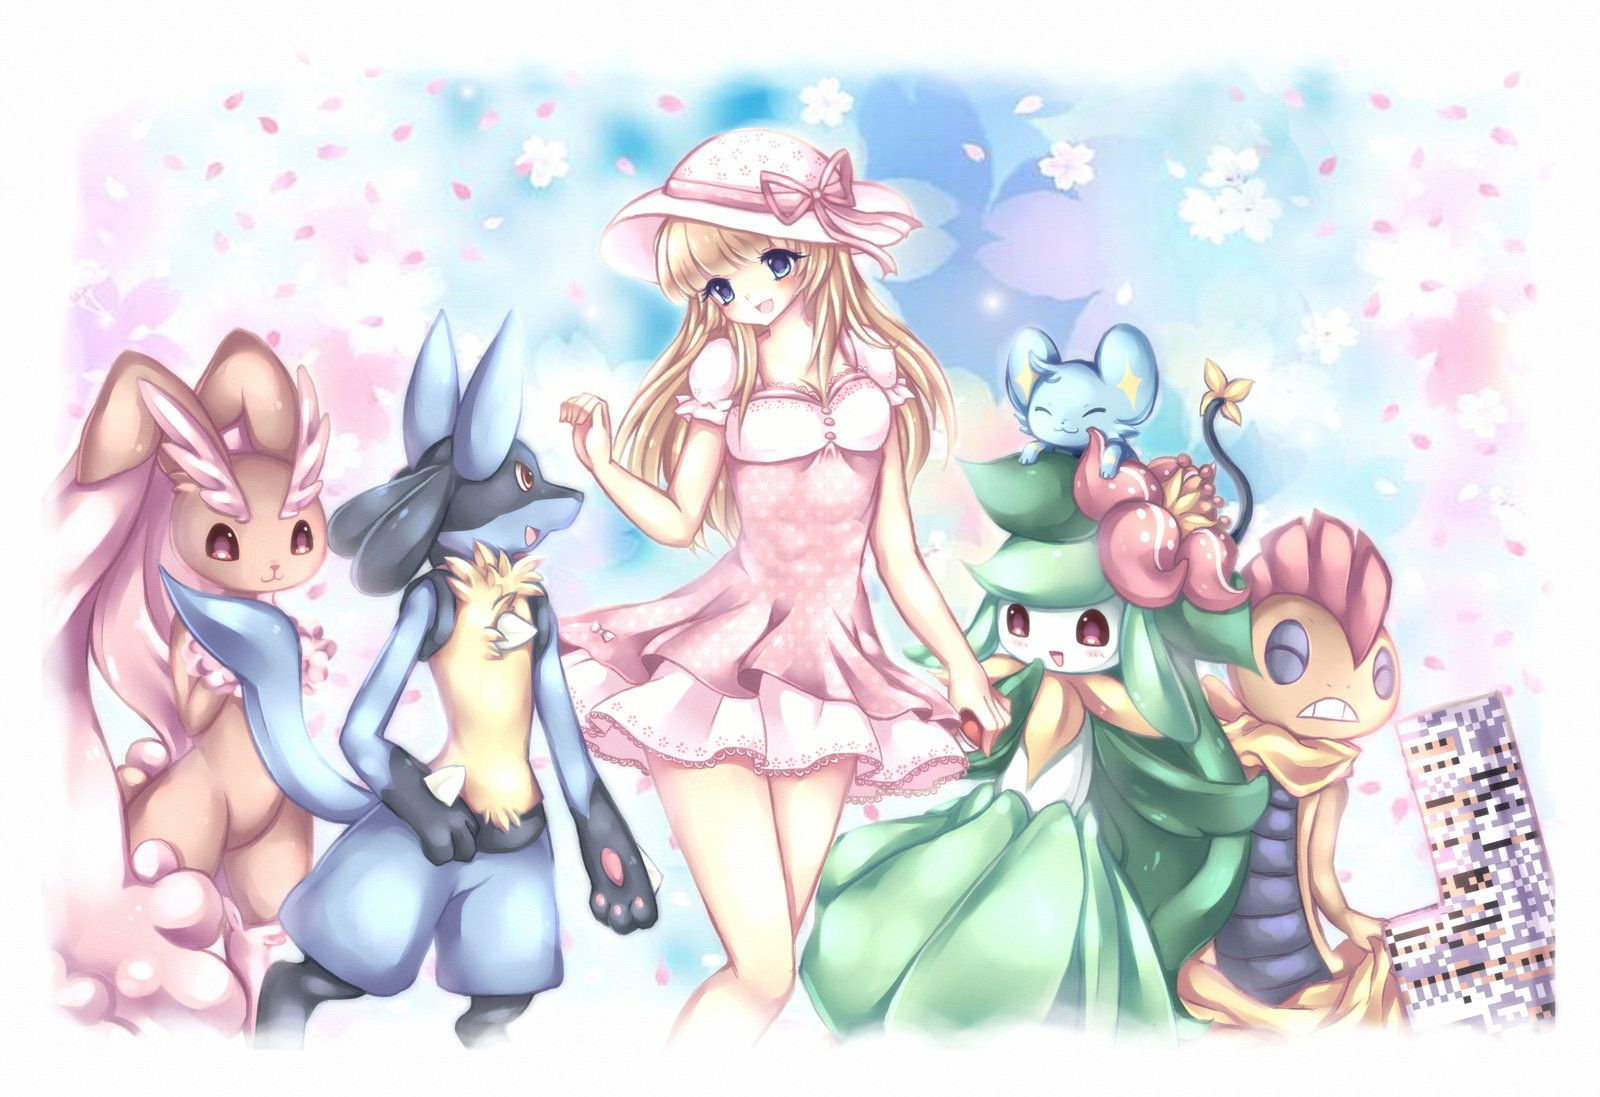 + My Pokemon Team + by Midna01.deviantart.com on @deviantART